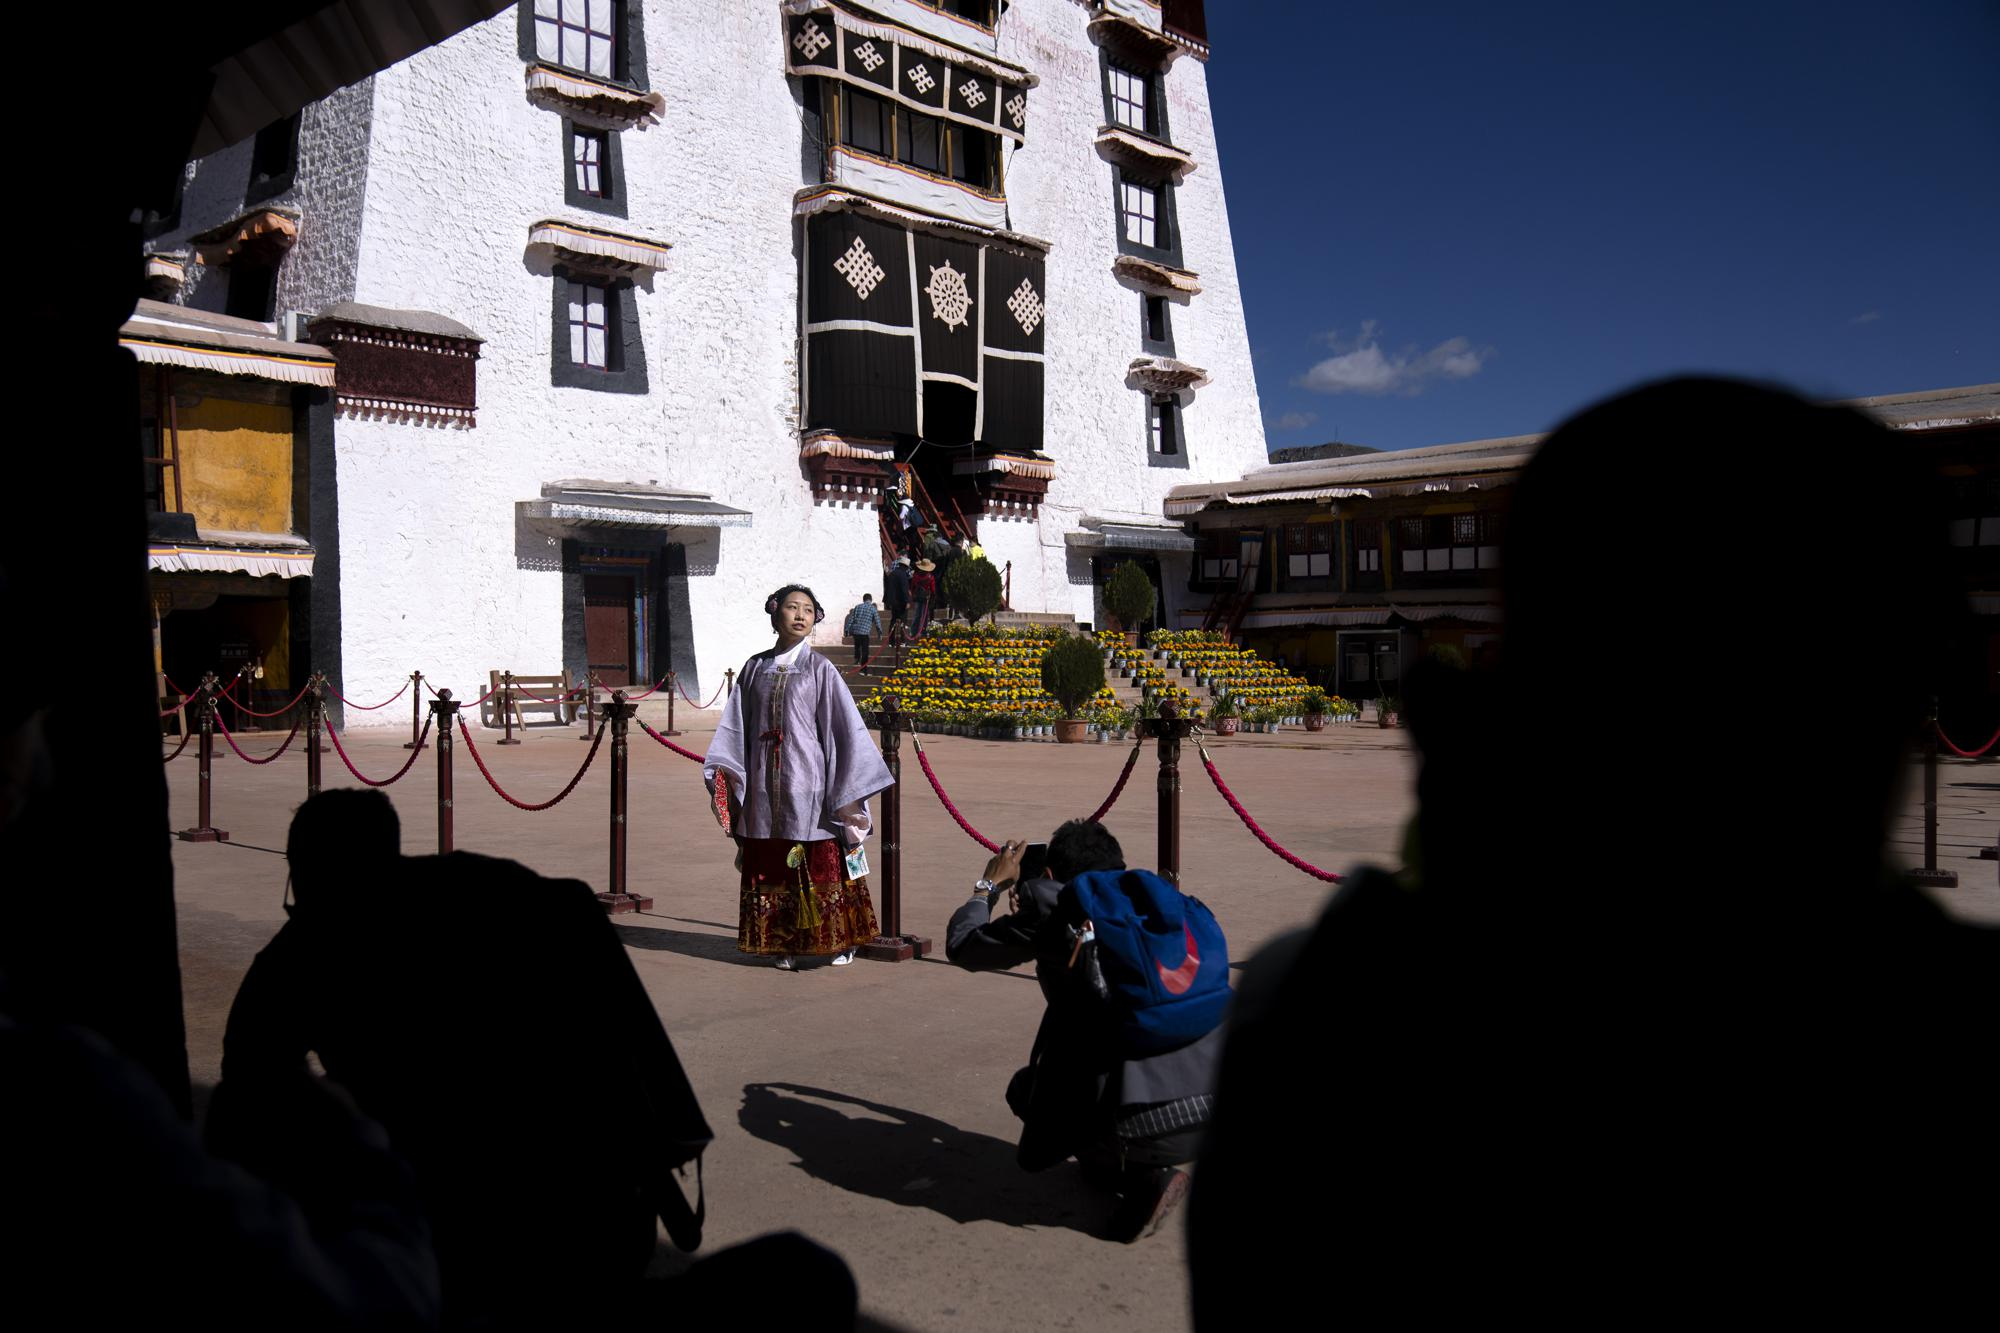 A Chinese tourist in Tibetan dress poses for a photo in a courtyard at the Potala Palace in Lhasa in western China's Tibet Autonomous Region, Tuesday, June 1, 2021. Tourism is booming in Tibet as more Chinese travel in-country because of the coronavirus pandemic, posing risks to the region's fragile environment and historic sites. (AP Photo/Mark Schiefelbein)